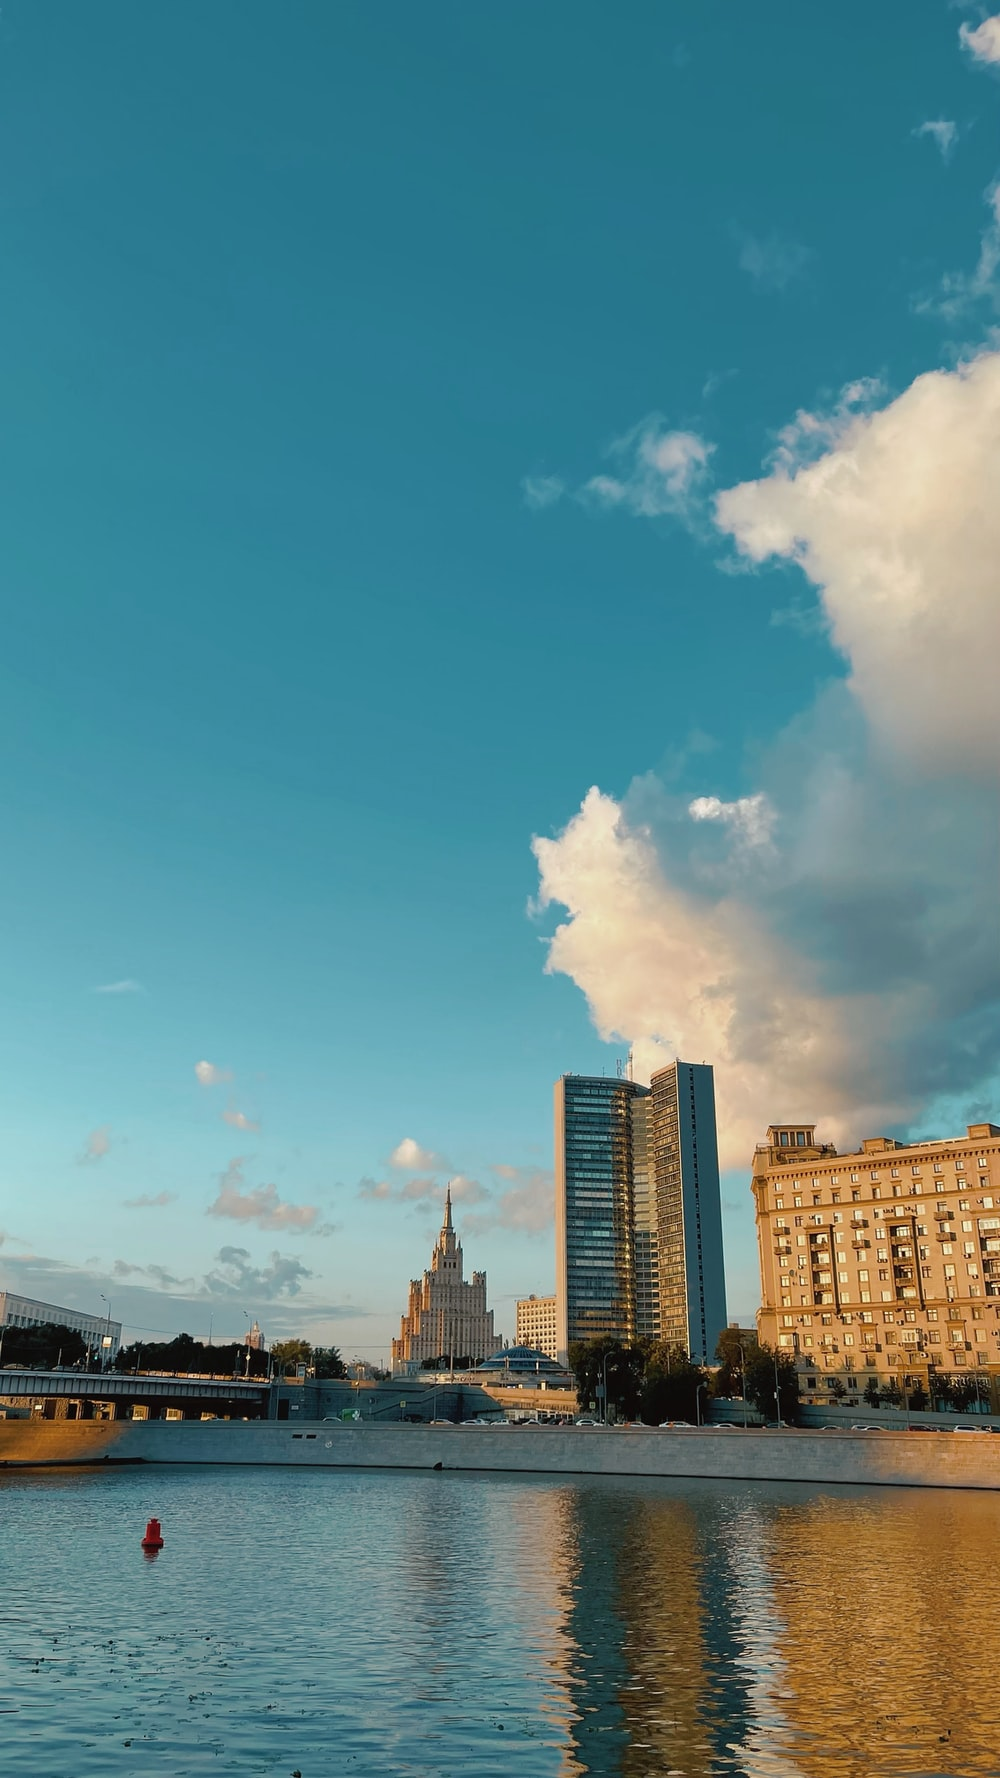 city buildings under blue sky and white clouds during daytime